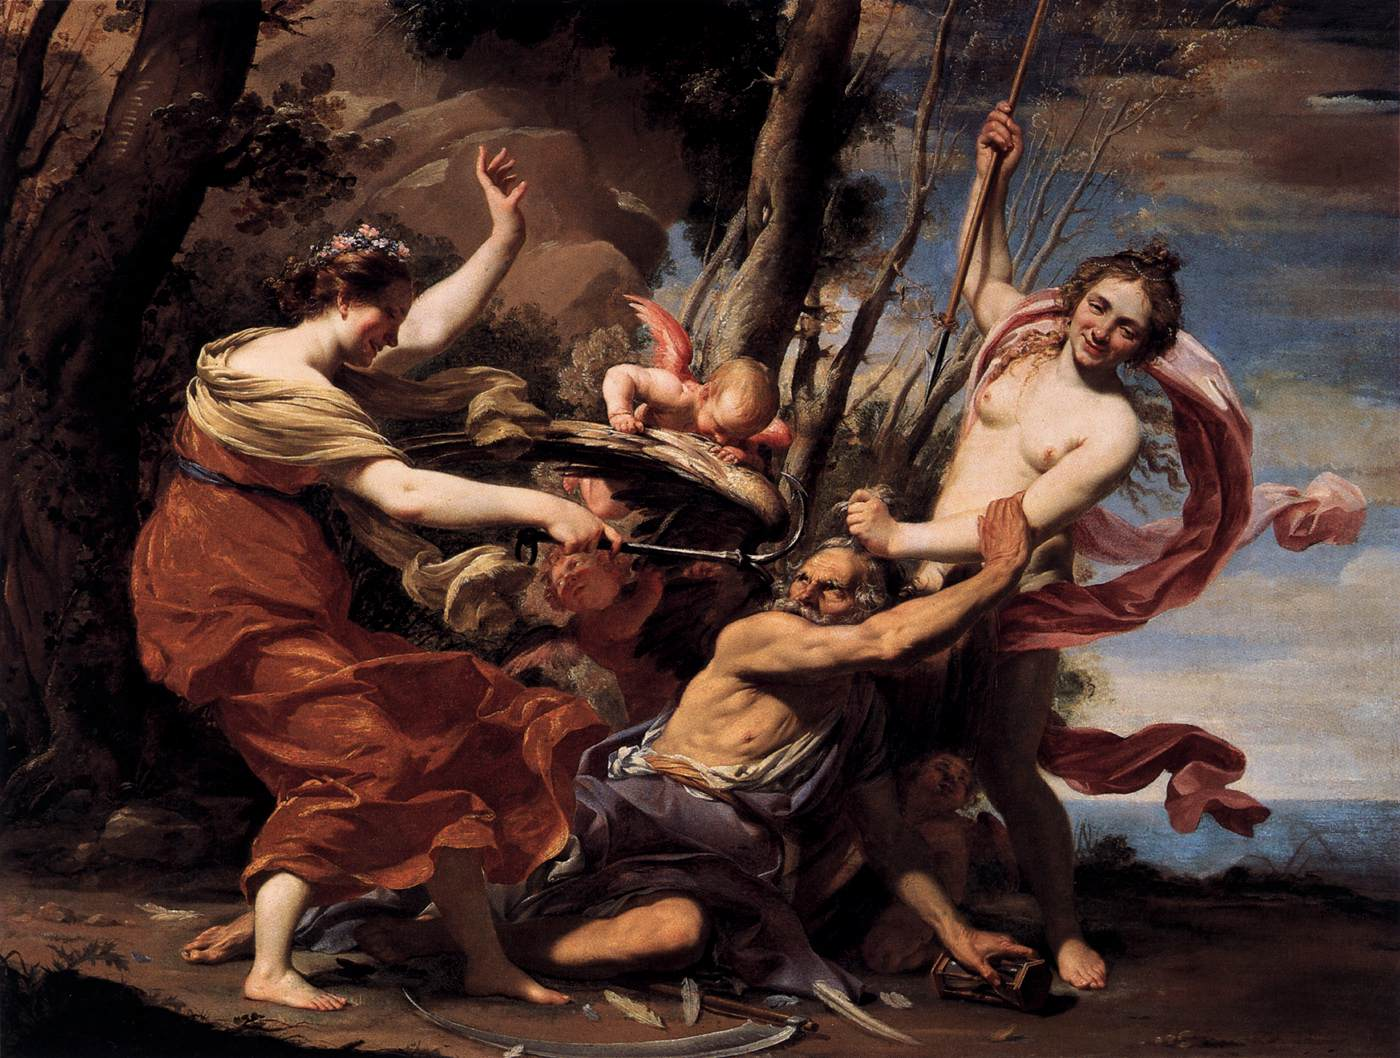 vouet_simon_-_father_time_overcome_by_love_hope_and_beauty_-_1627